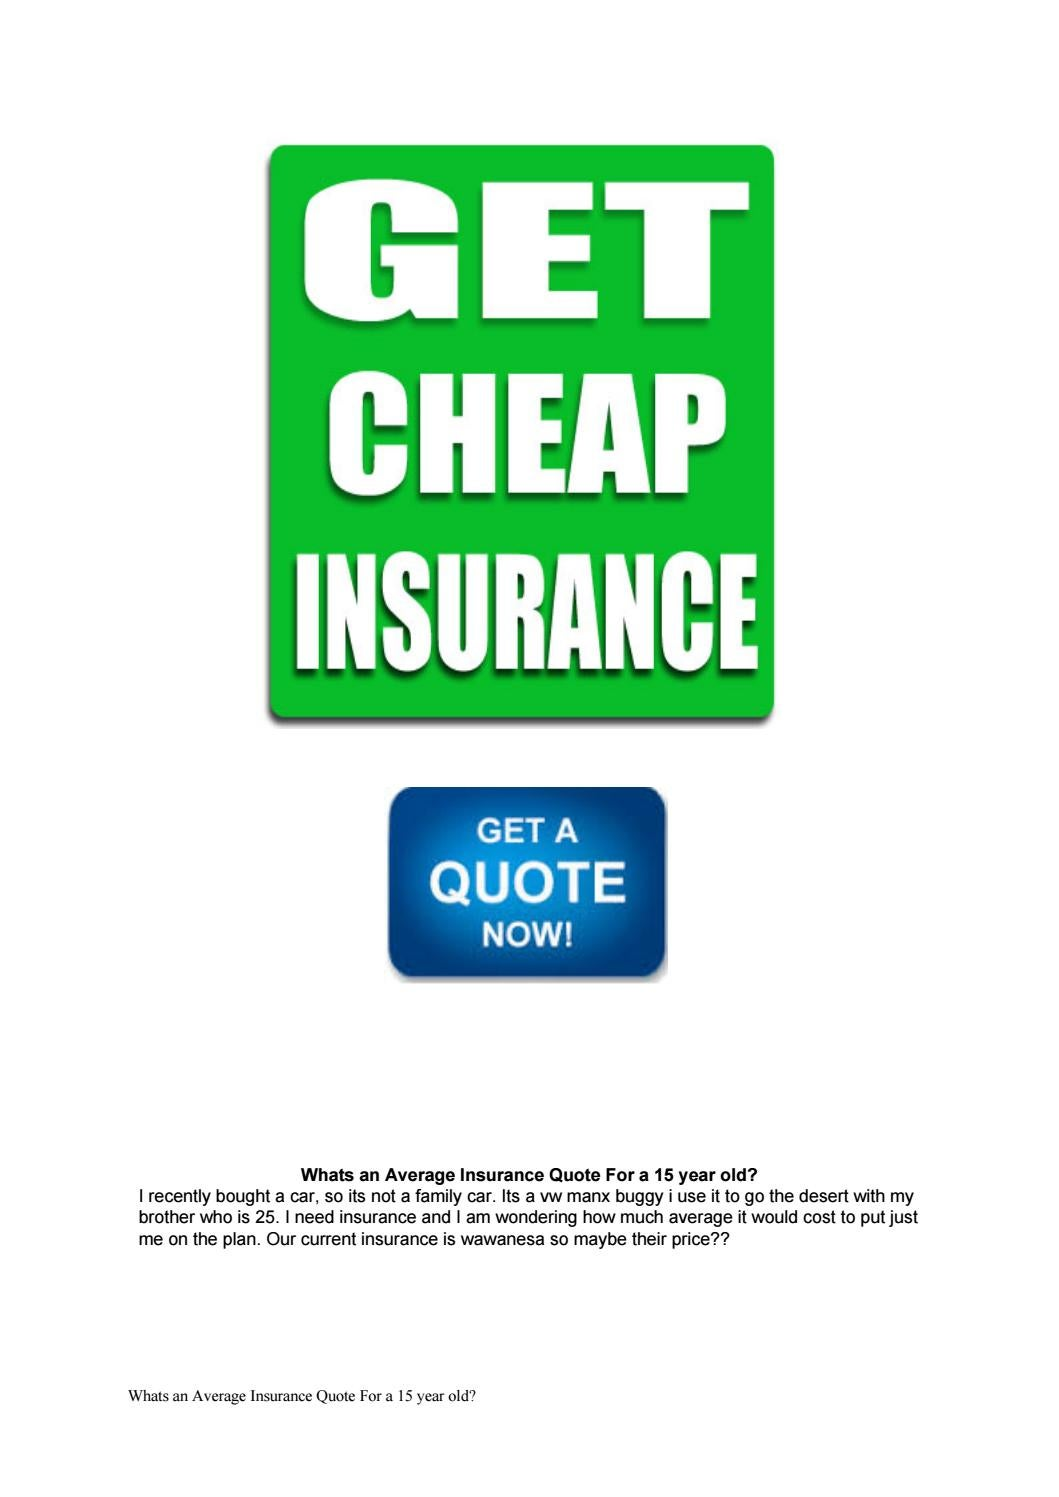 Wawanesa Car Insurance >> Whats An Average Insurance Quote For A 15 Year Old By